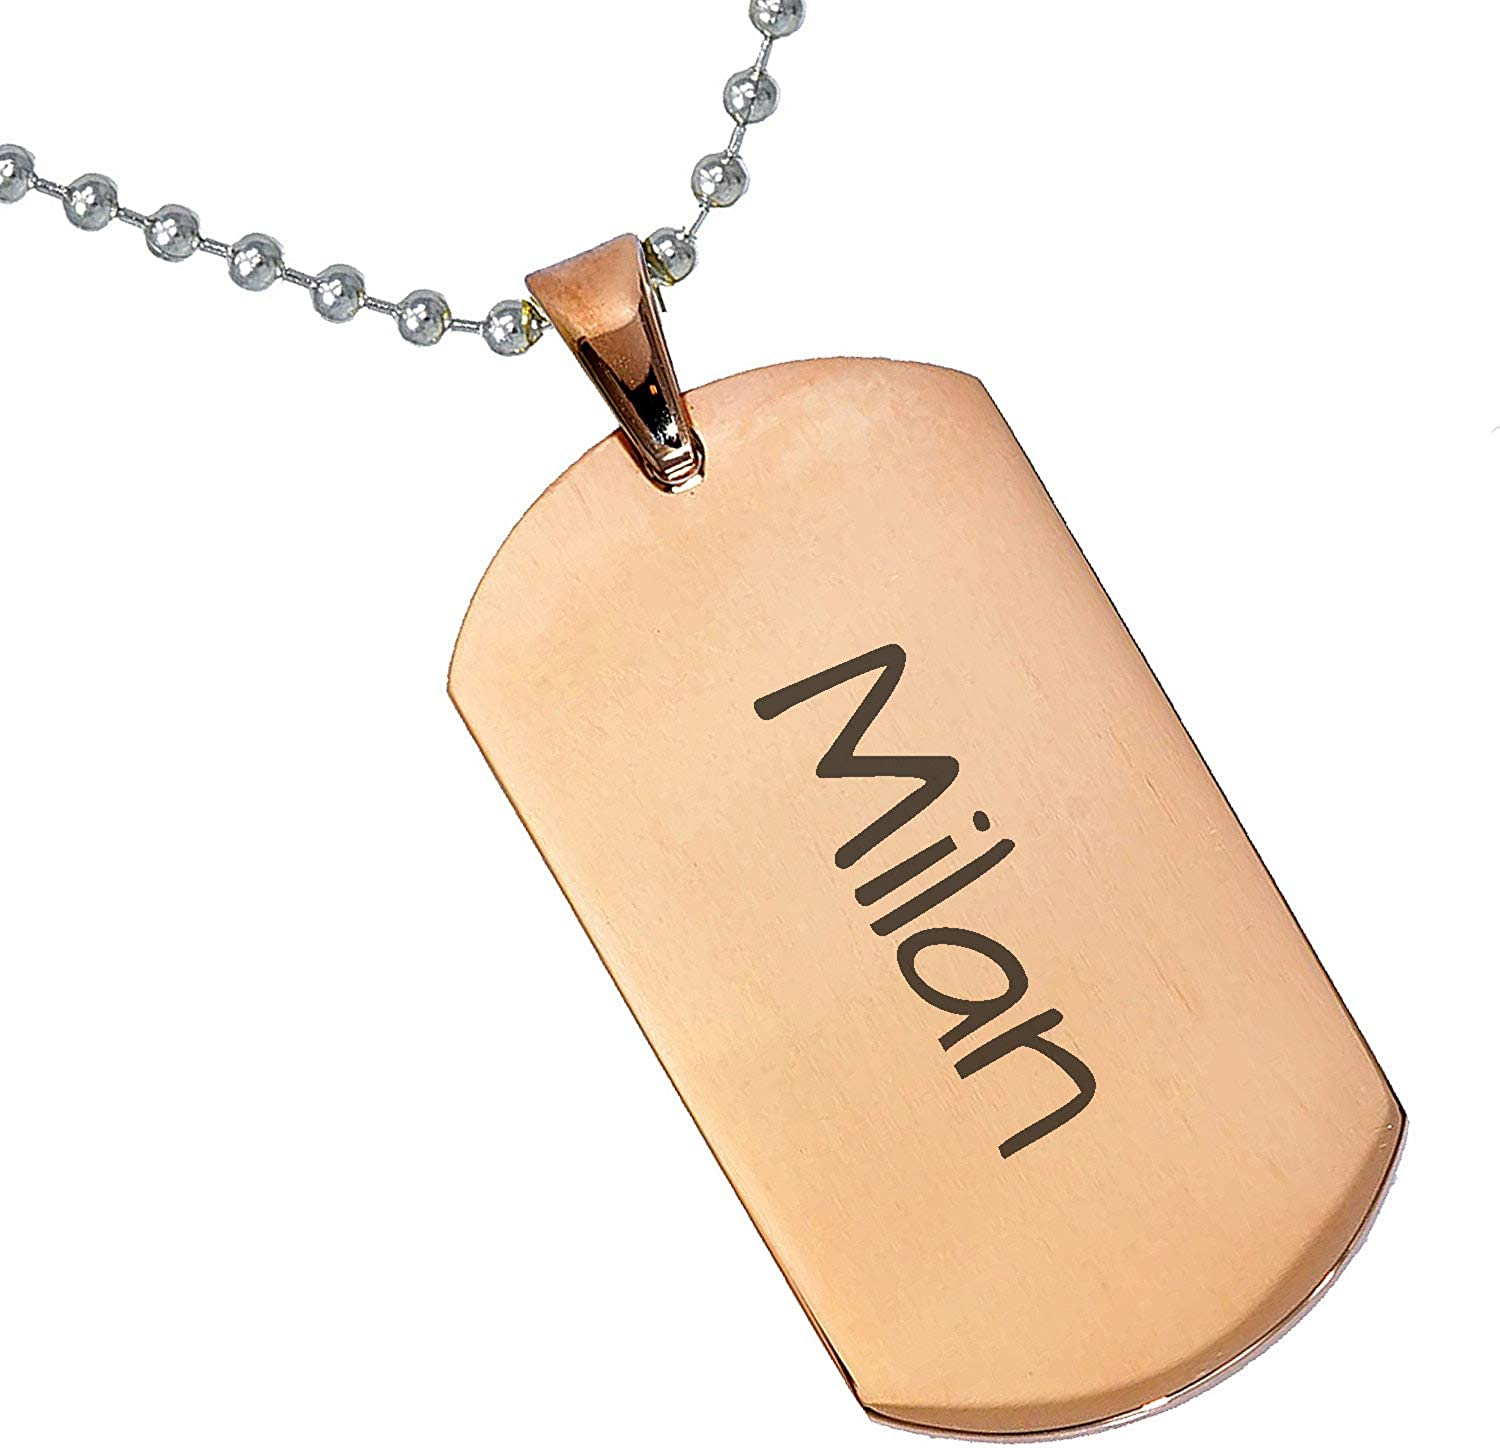 Stainless Steel Silver Gold Black Rose Gold Color Baby Name Milan Engraved Personalized Gifts For Son Daughter Boyfriend Girlfriend Initial Customizable Pendant Necklace Dog Tags 24 Ball Chain